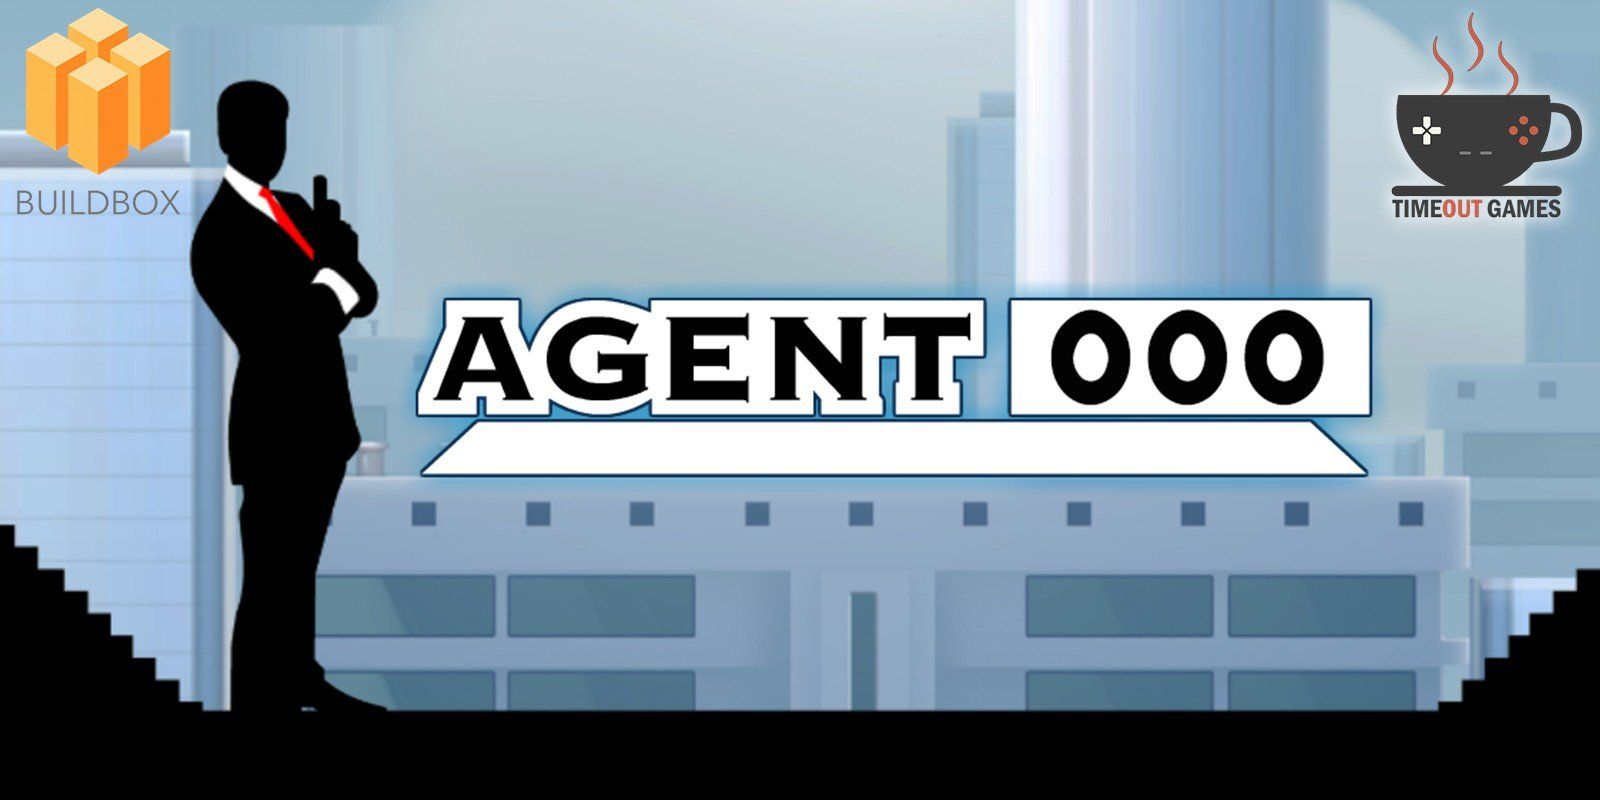 Agent 000 - Full Buildbox Game